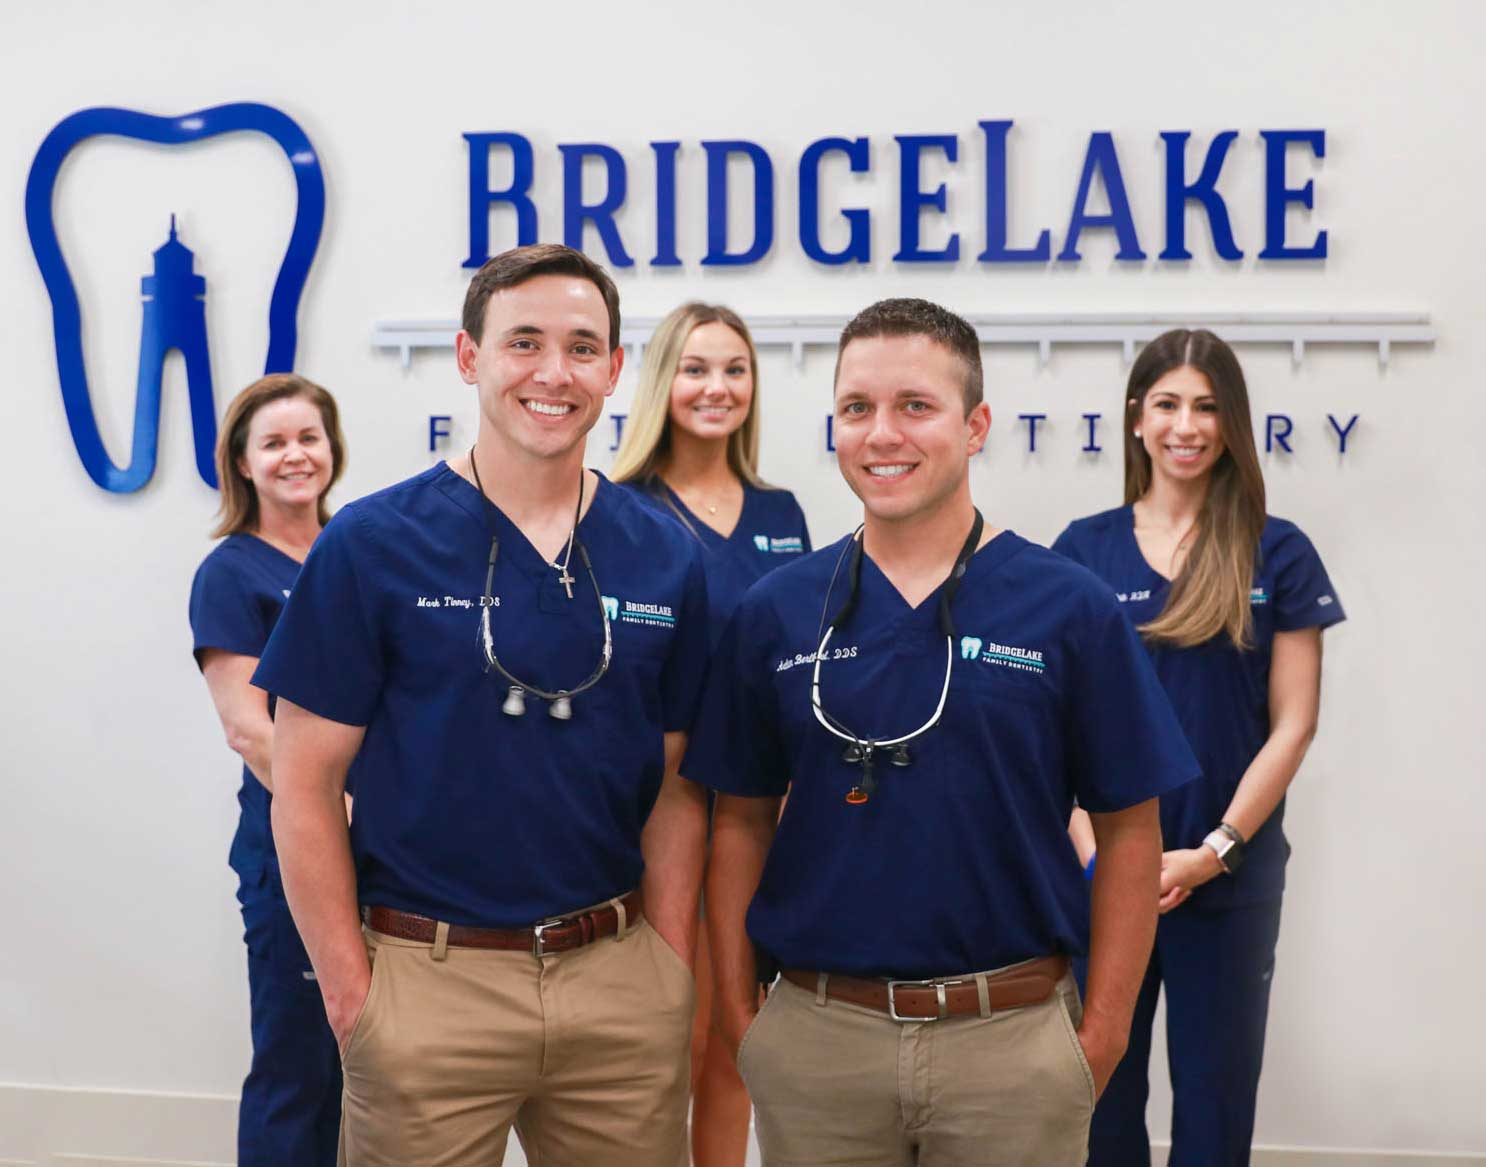 group photo of the Bridgelake staff